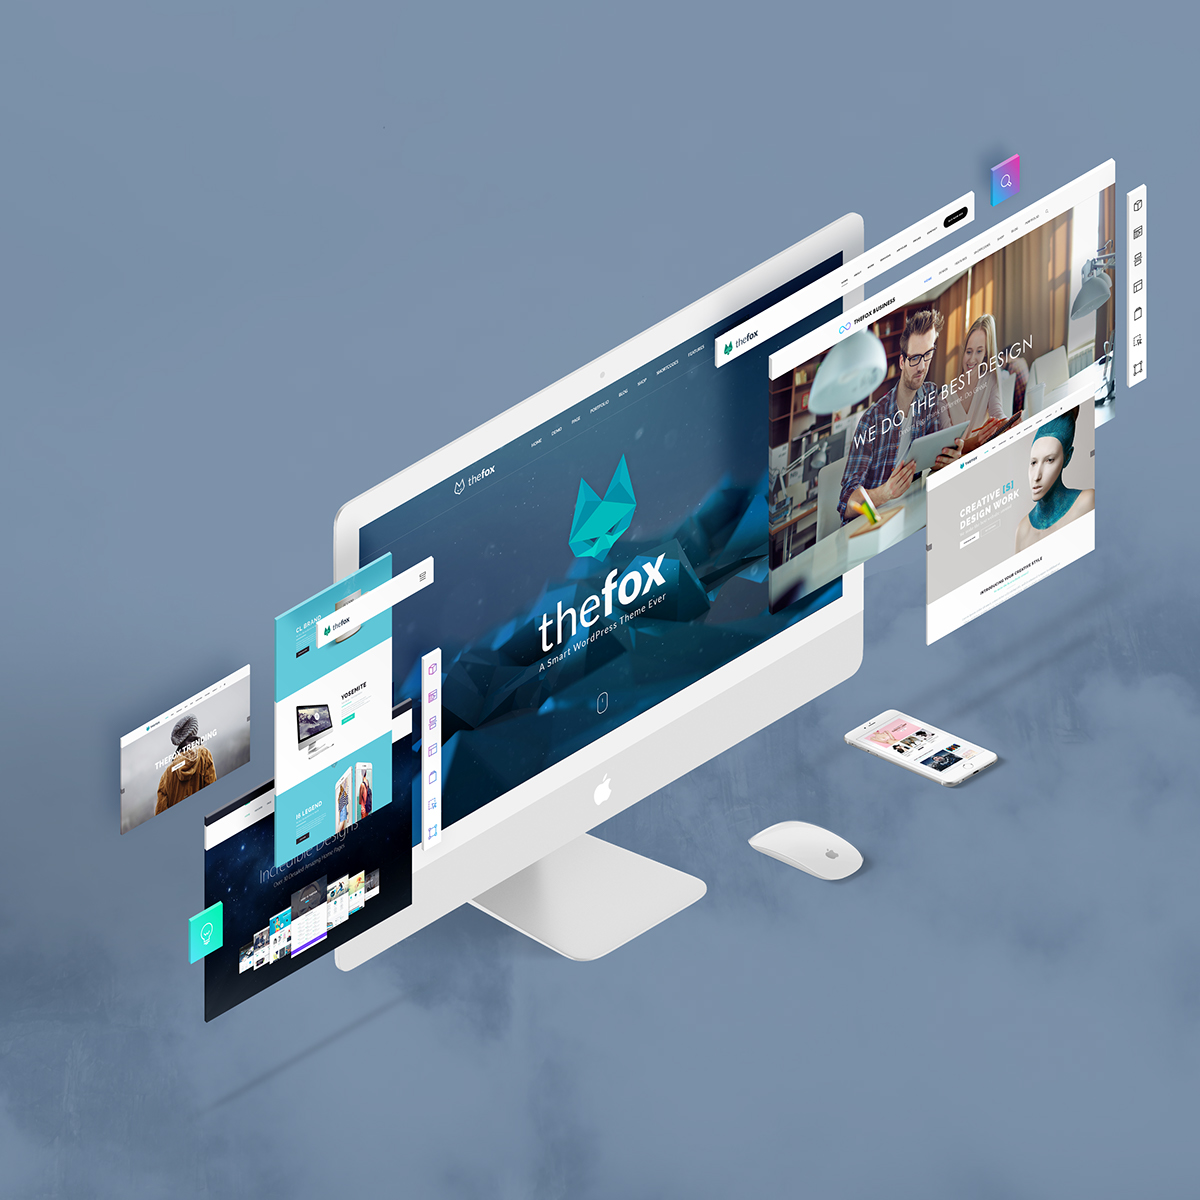 The Screens Free Perspective Psd Mockup Template On Behance